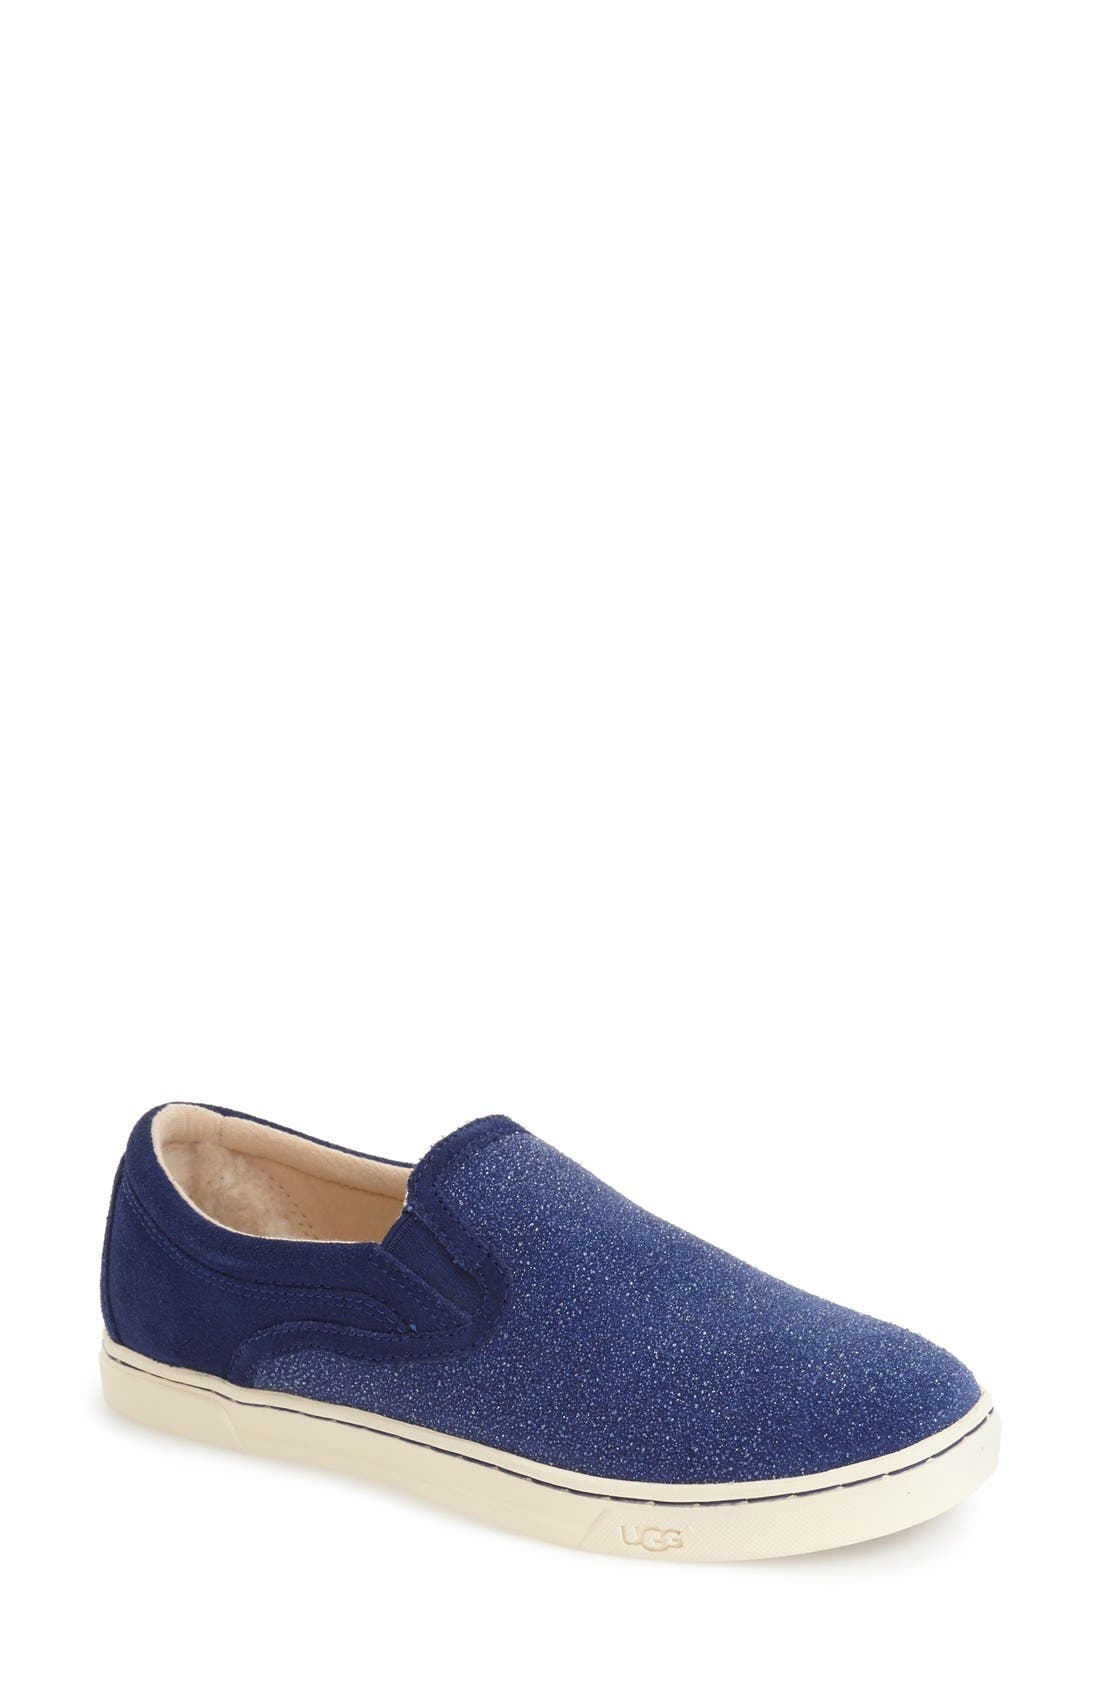 Fierce Slip-On Sneaker,                             Main thumbnail 1, color,                             Night Sky Fabric